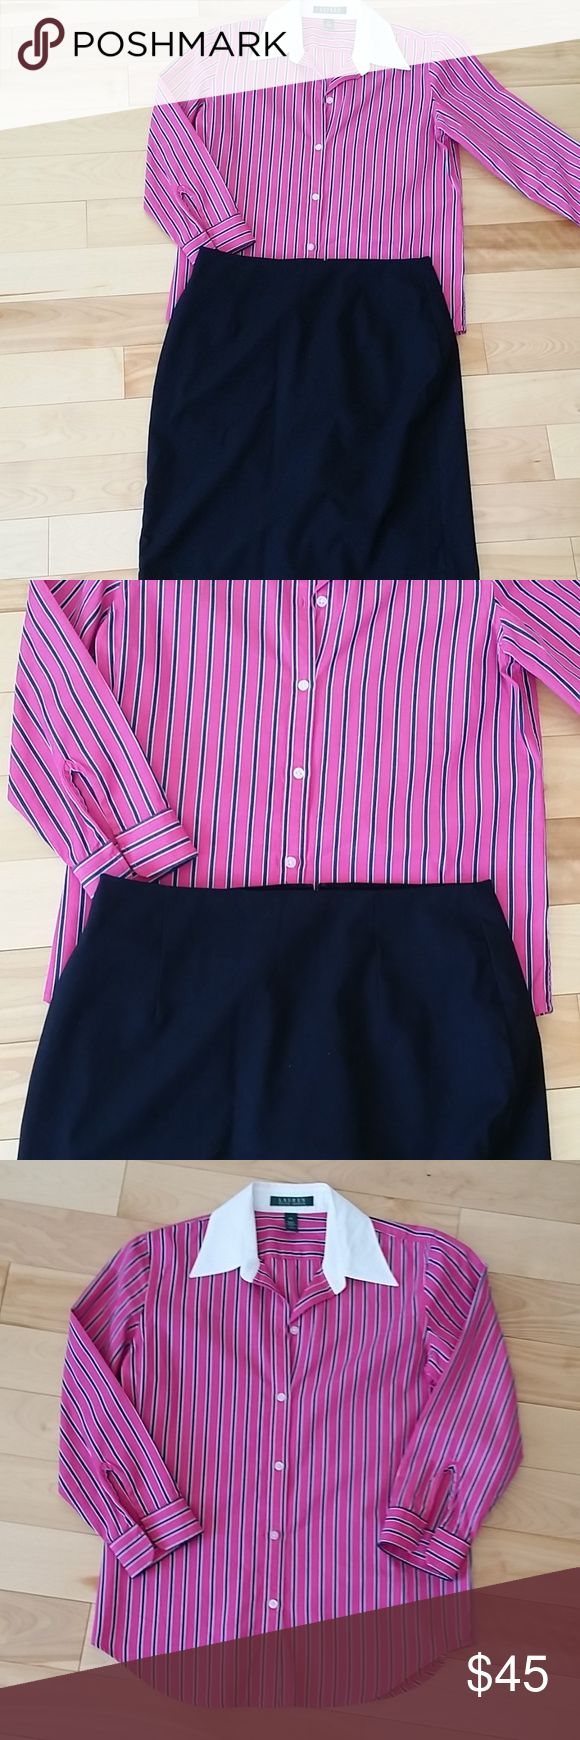 """Ralph Lauren Pink Stripe Shirt 3/4 Sleeve Womens Lauren by Ralph Lauren 3/4 Sleeve Shirt. Never used and in great condition.  The stripes are dark blue. Skirt is not included, but can be added to your order.  Size XS.  28"""" Chest, 26"""" Length 100% cotton. Ralph Lauren Tops Button Down Shirts"""